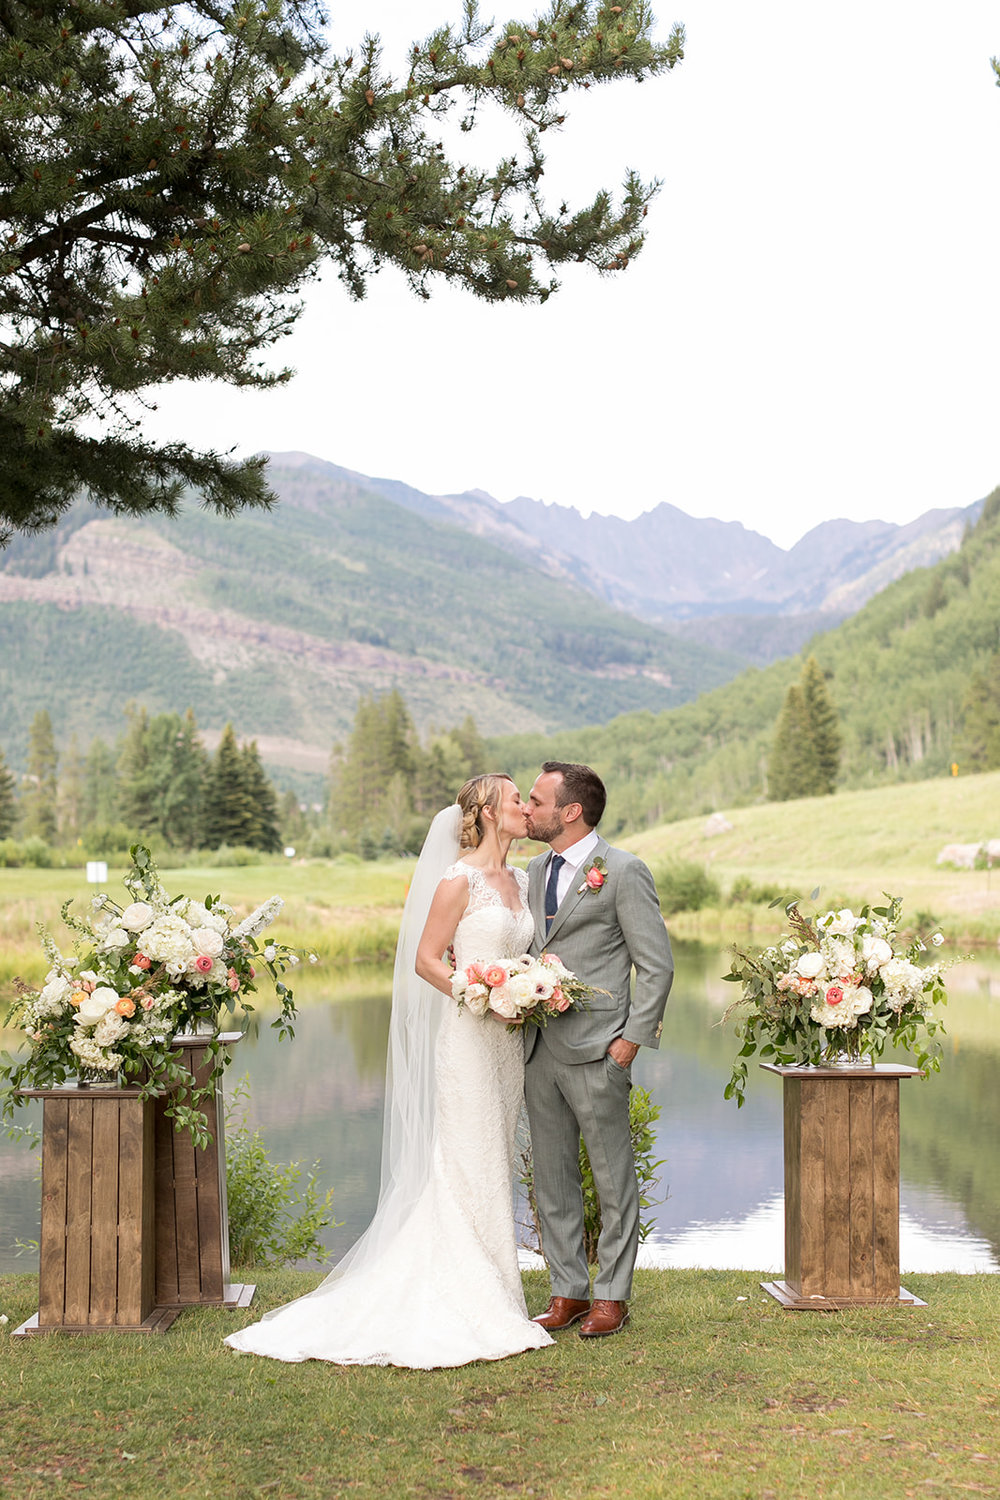 Laura + Justin | Vail Golf Club | July 2018 |  Amy Caroline Photography